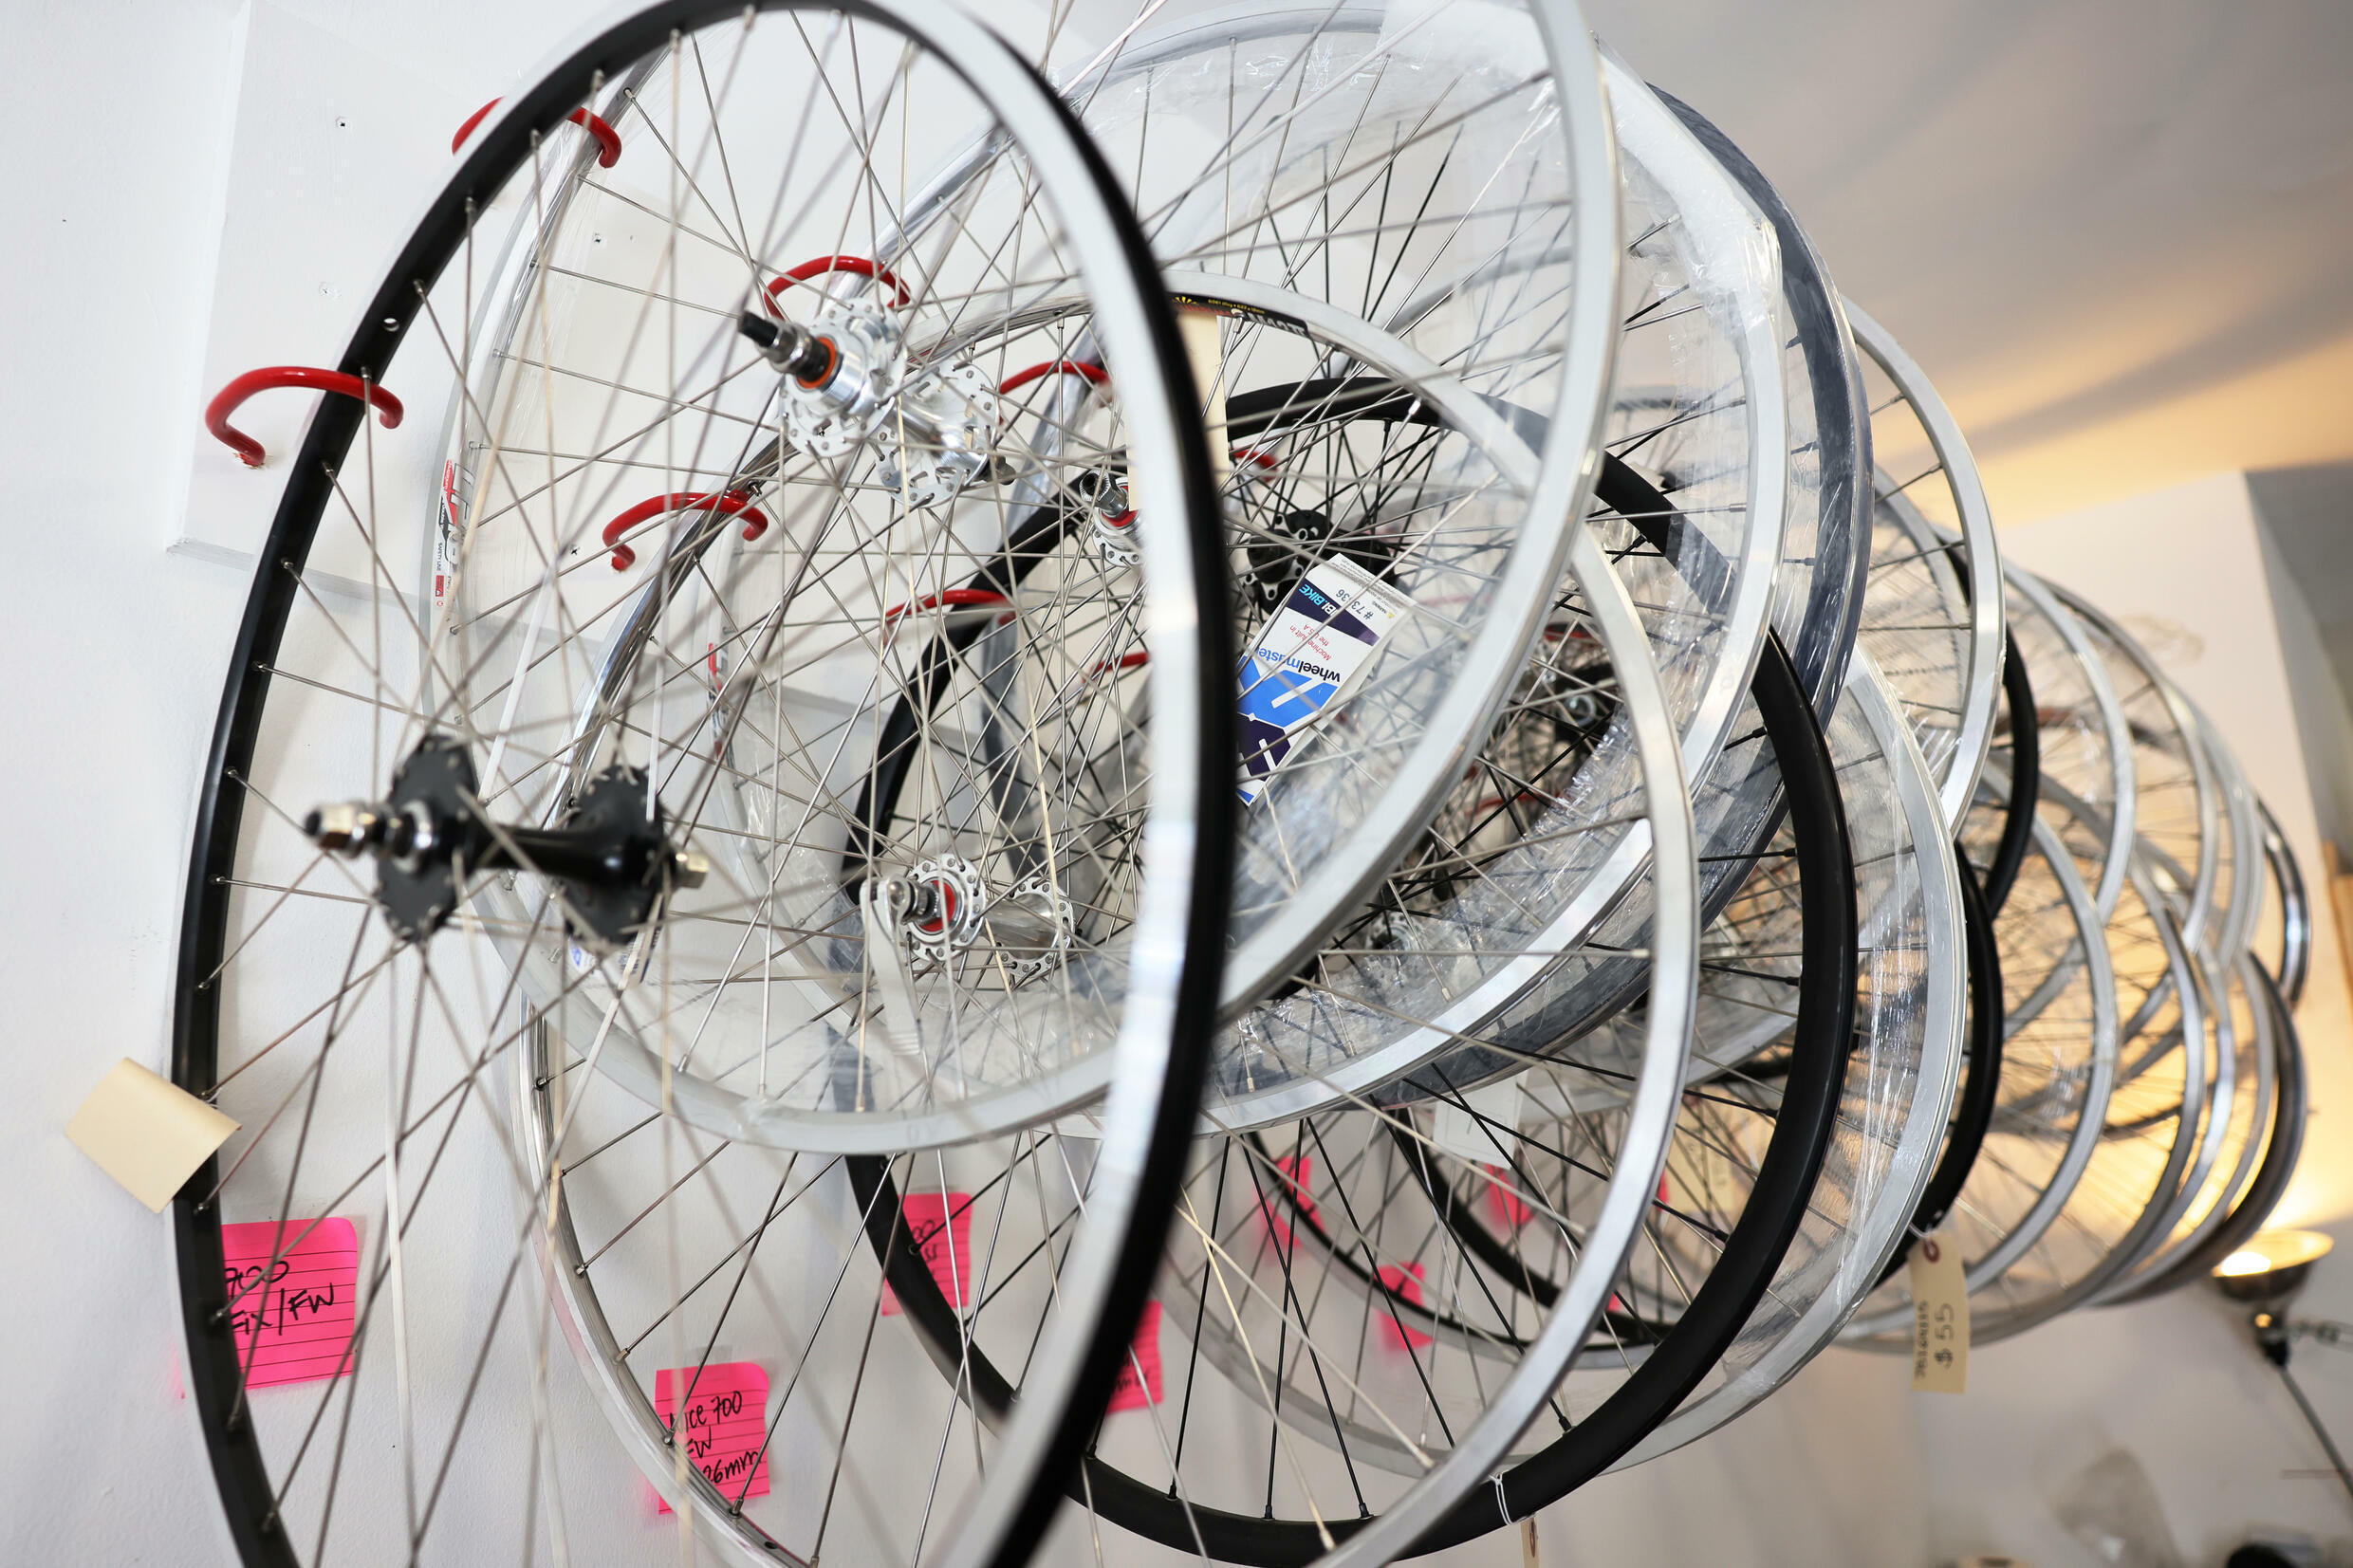 Bicycle wheels for sale in a New York store in June 2021